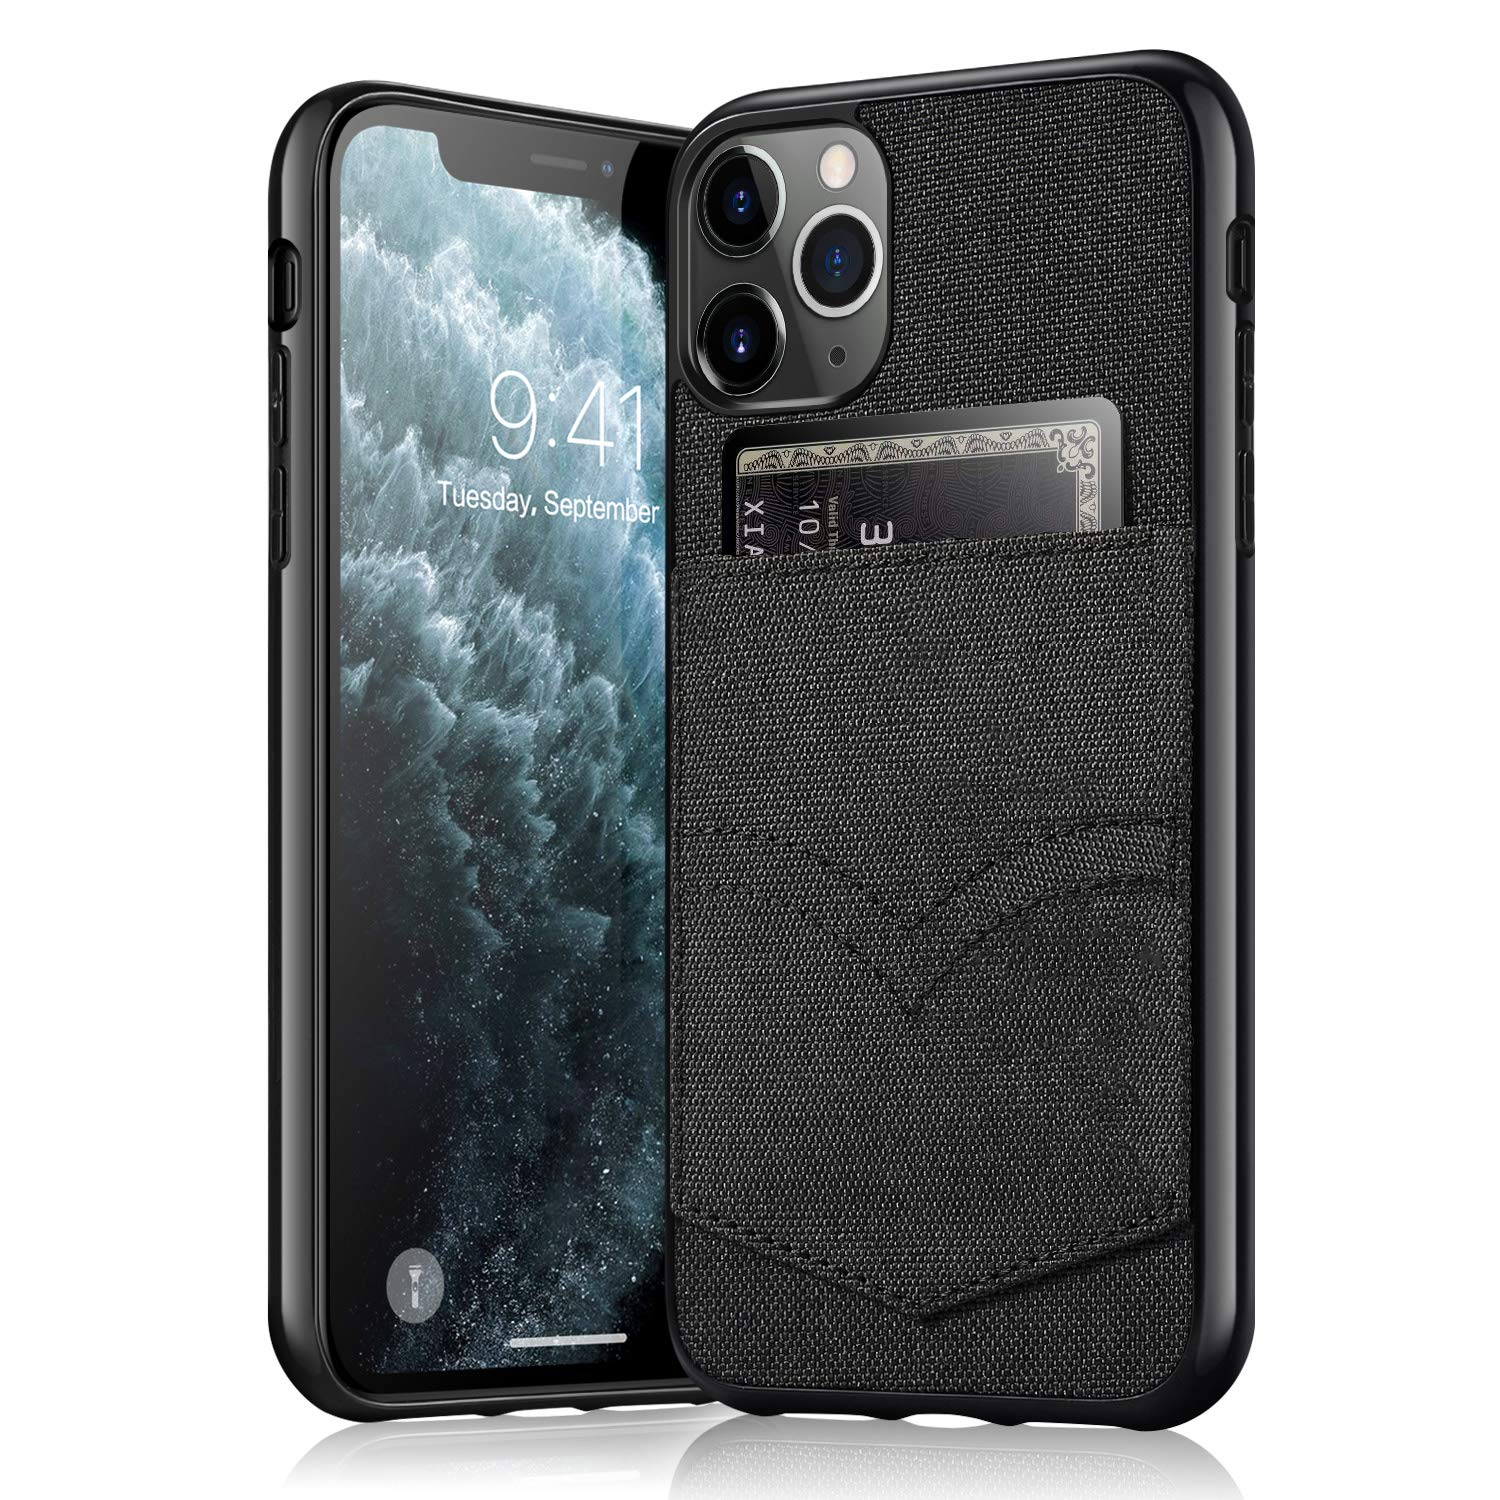 HTGK iPhone 11 Pro Max Wallet Case, iPhone 11 Pro Max Credit Card Slot Holder Case, Canvas + Soft Flexible TPU Cover Case for iPhone 11 Pro Max (2019) 6.5 inch (Black)